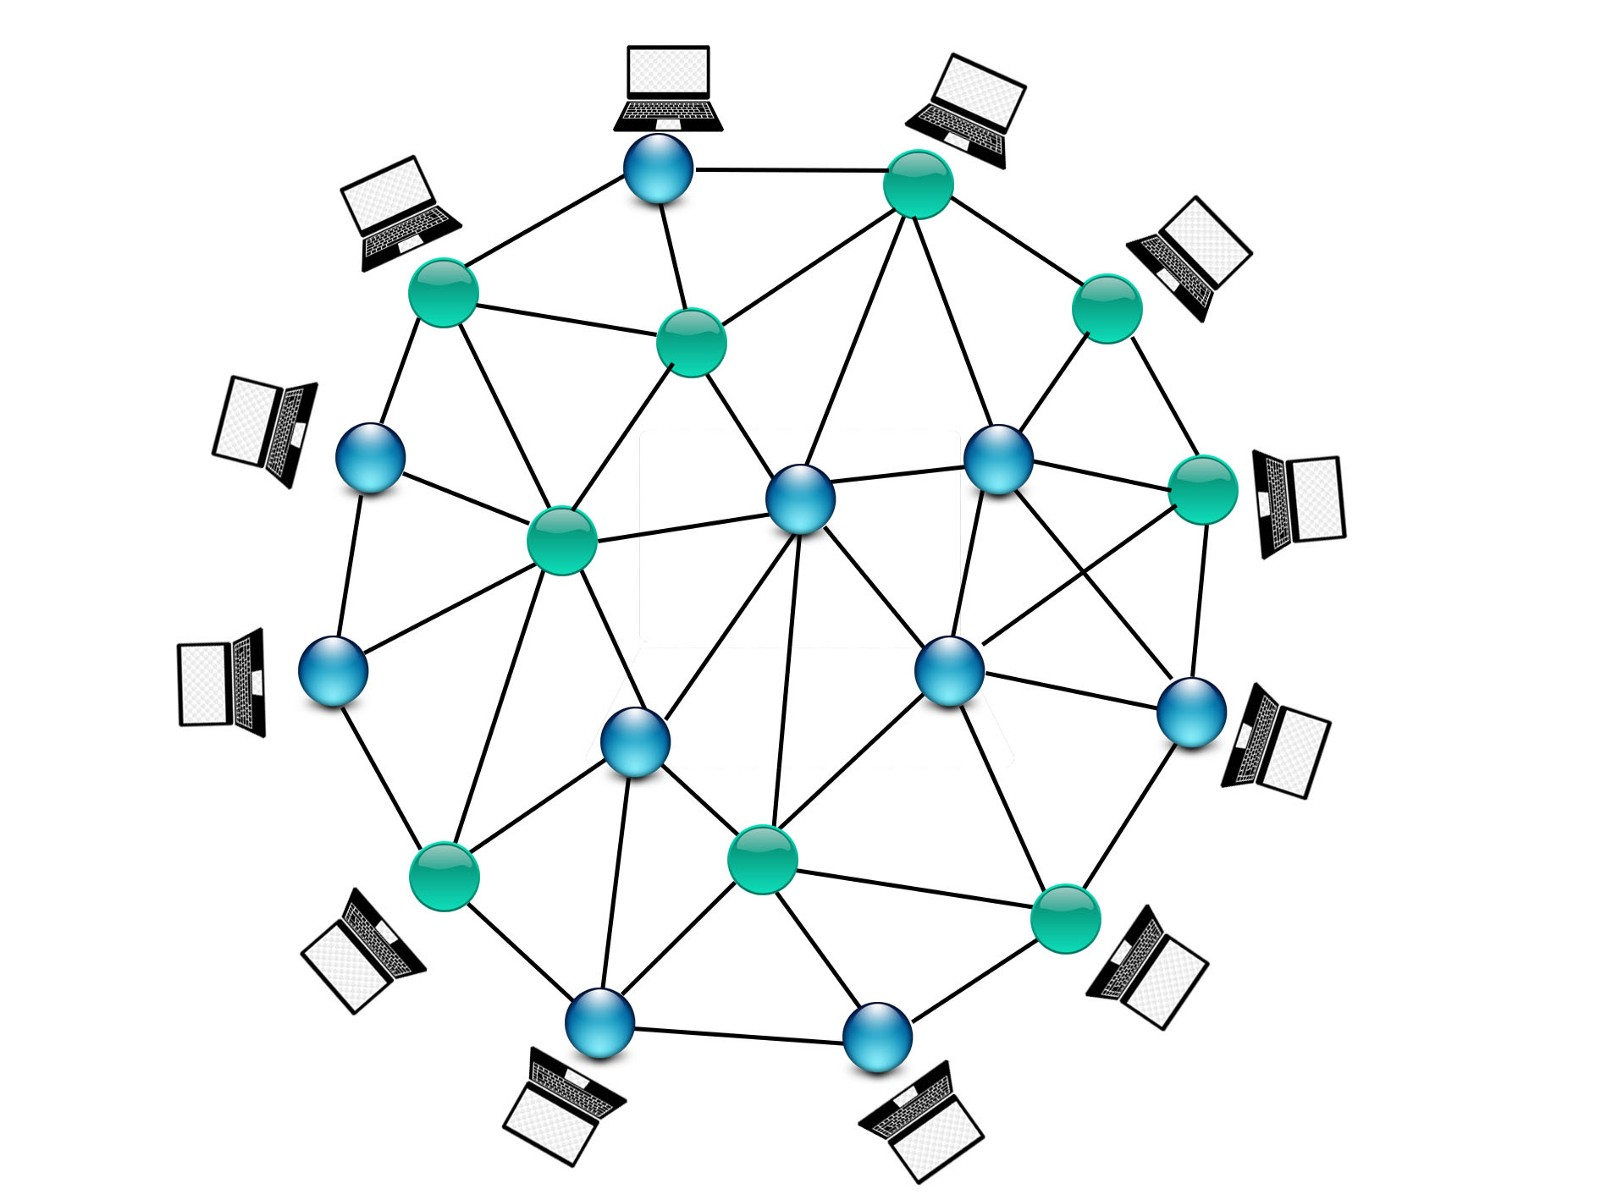 NODES Are Any Computer That Hosts The Blockchain Nodes Will Get A Copy Of Data Stored In When They Join Network